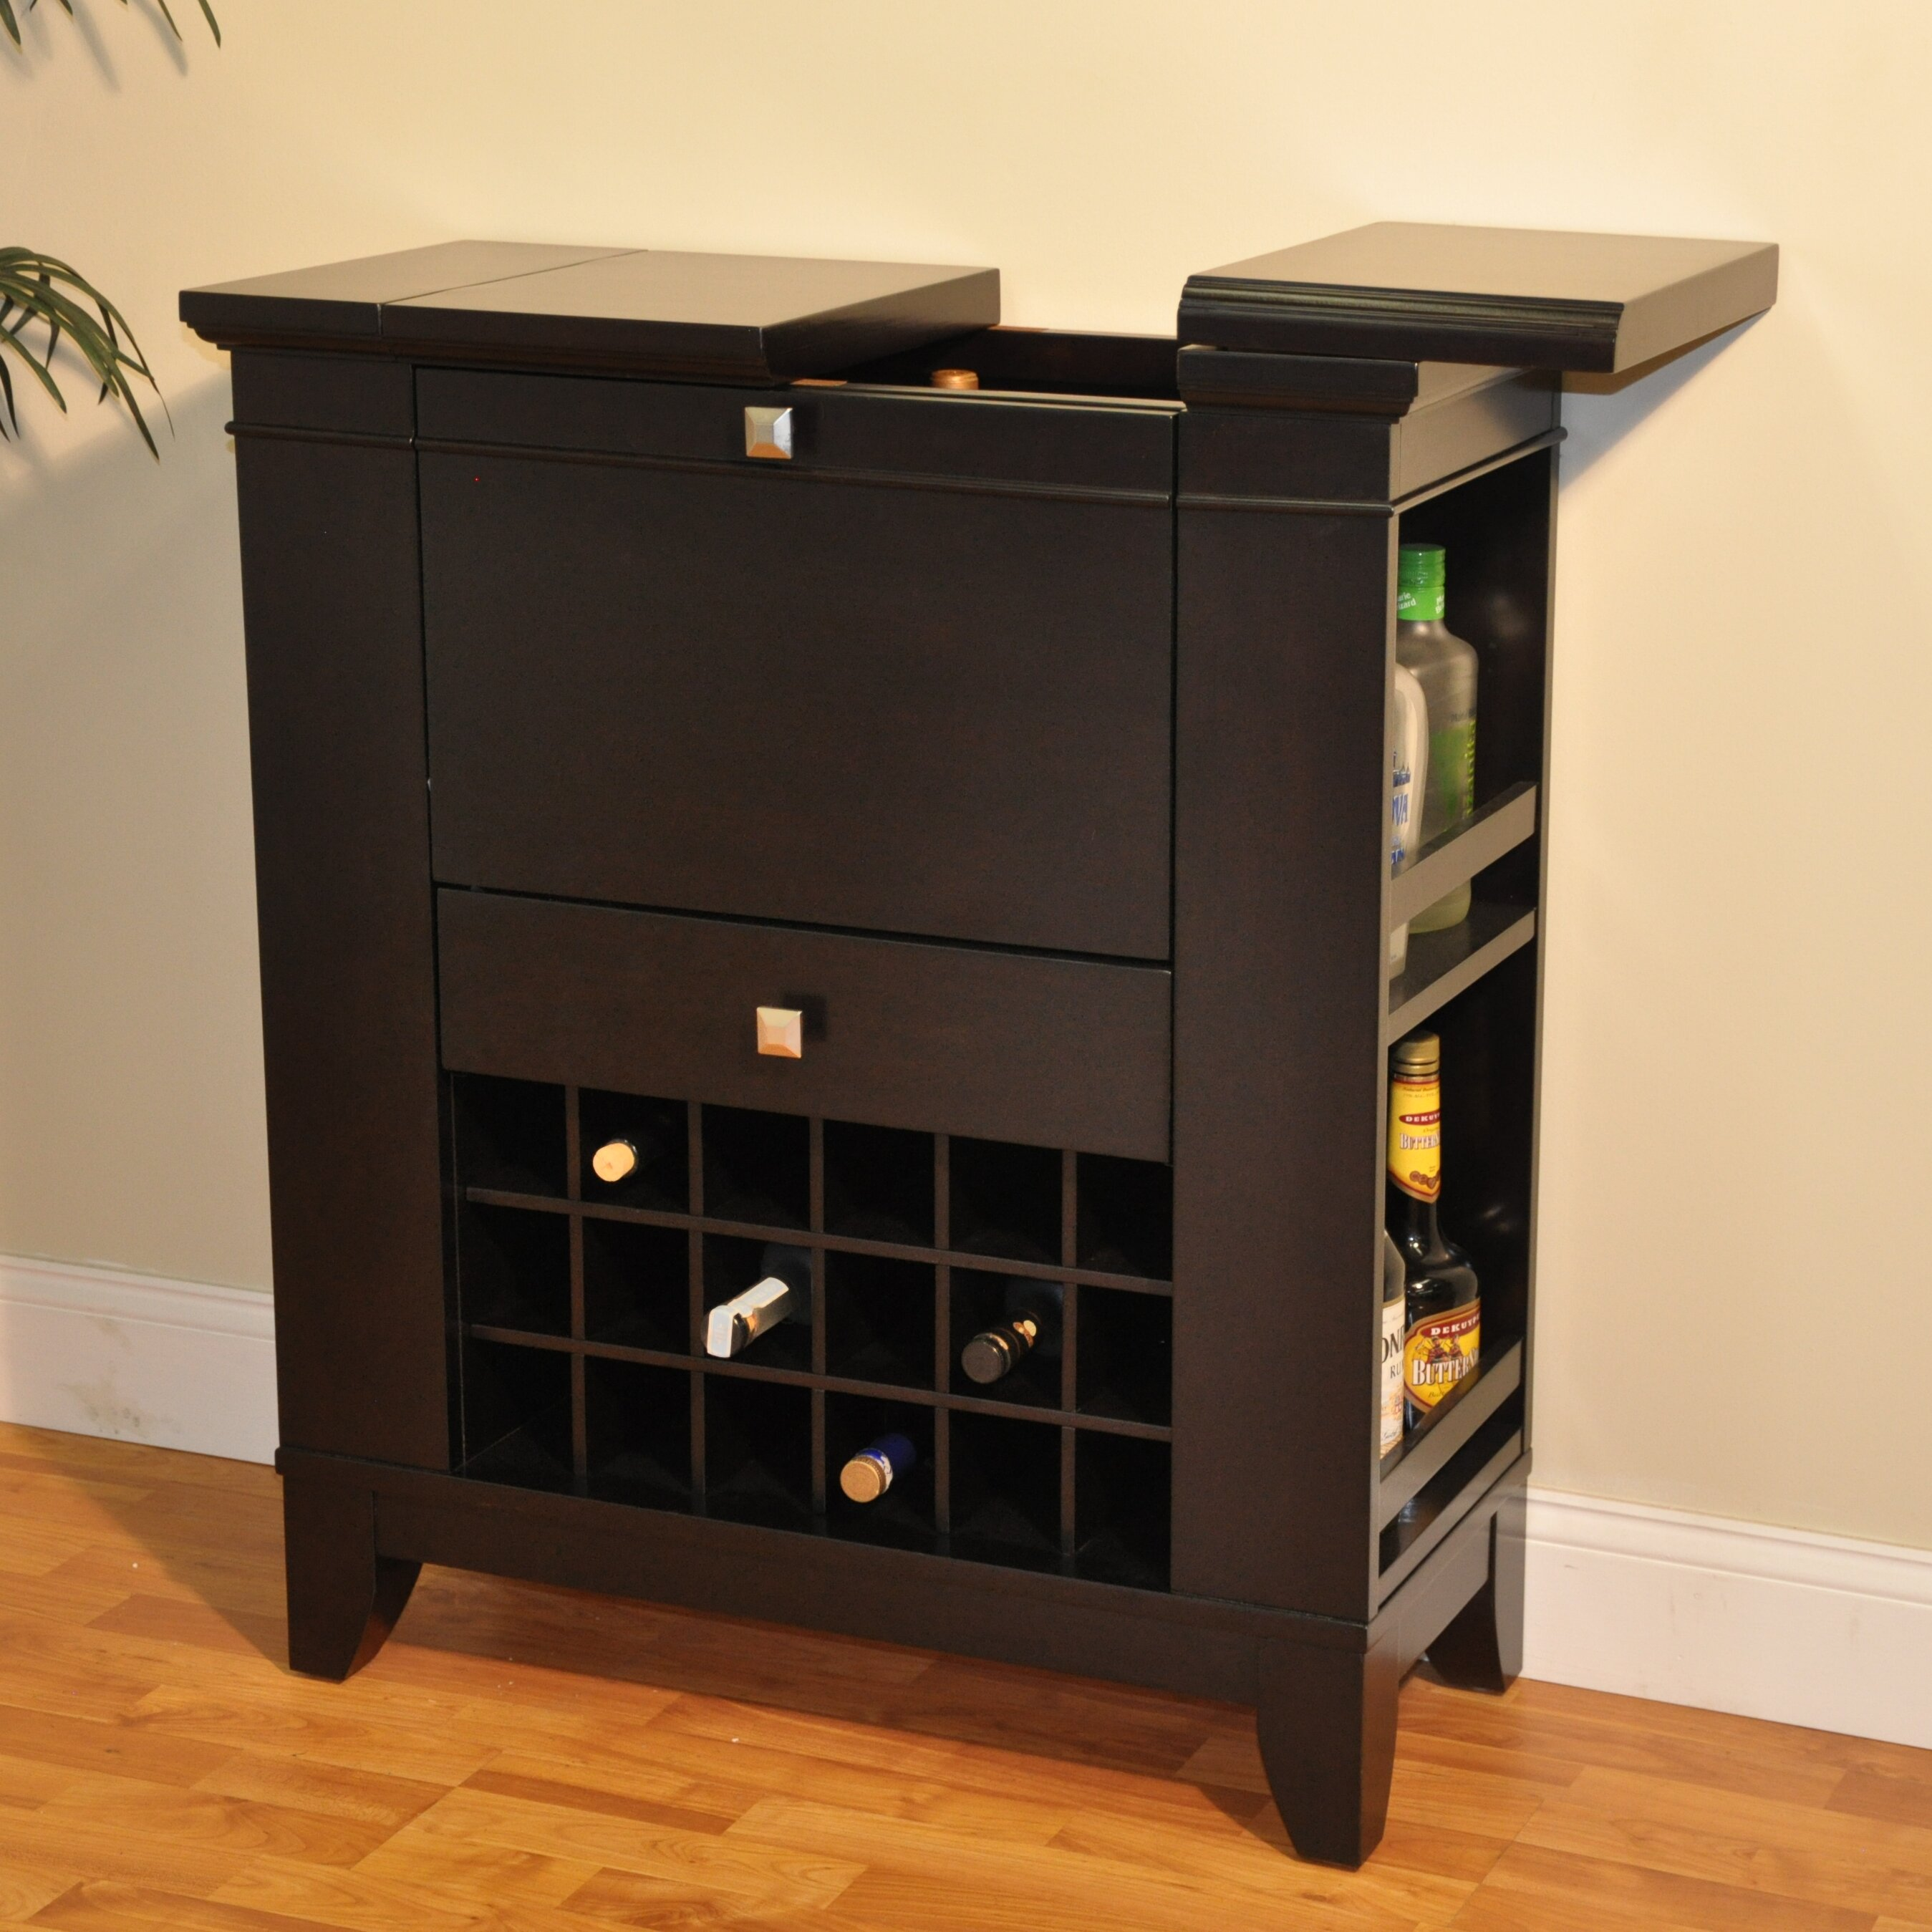 Eci Furniture Gianna Spirit Bar With Wine Storage